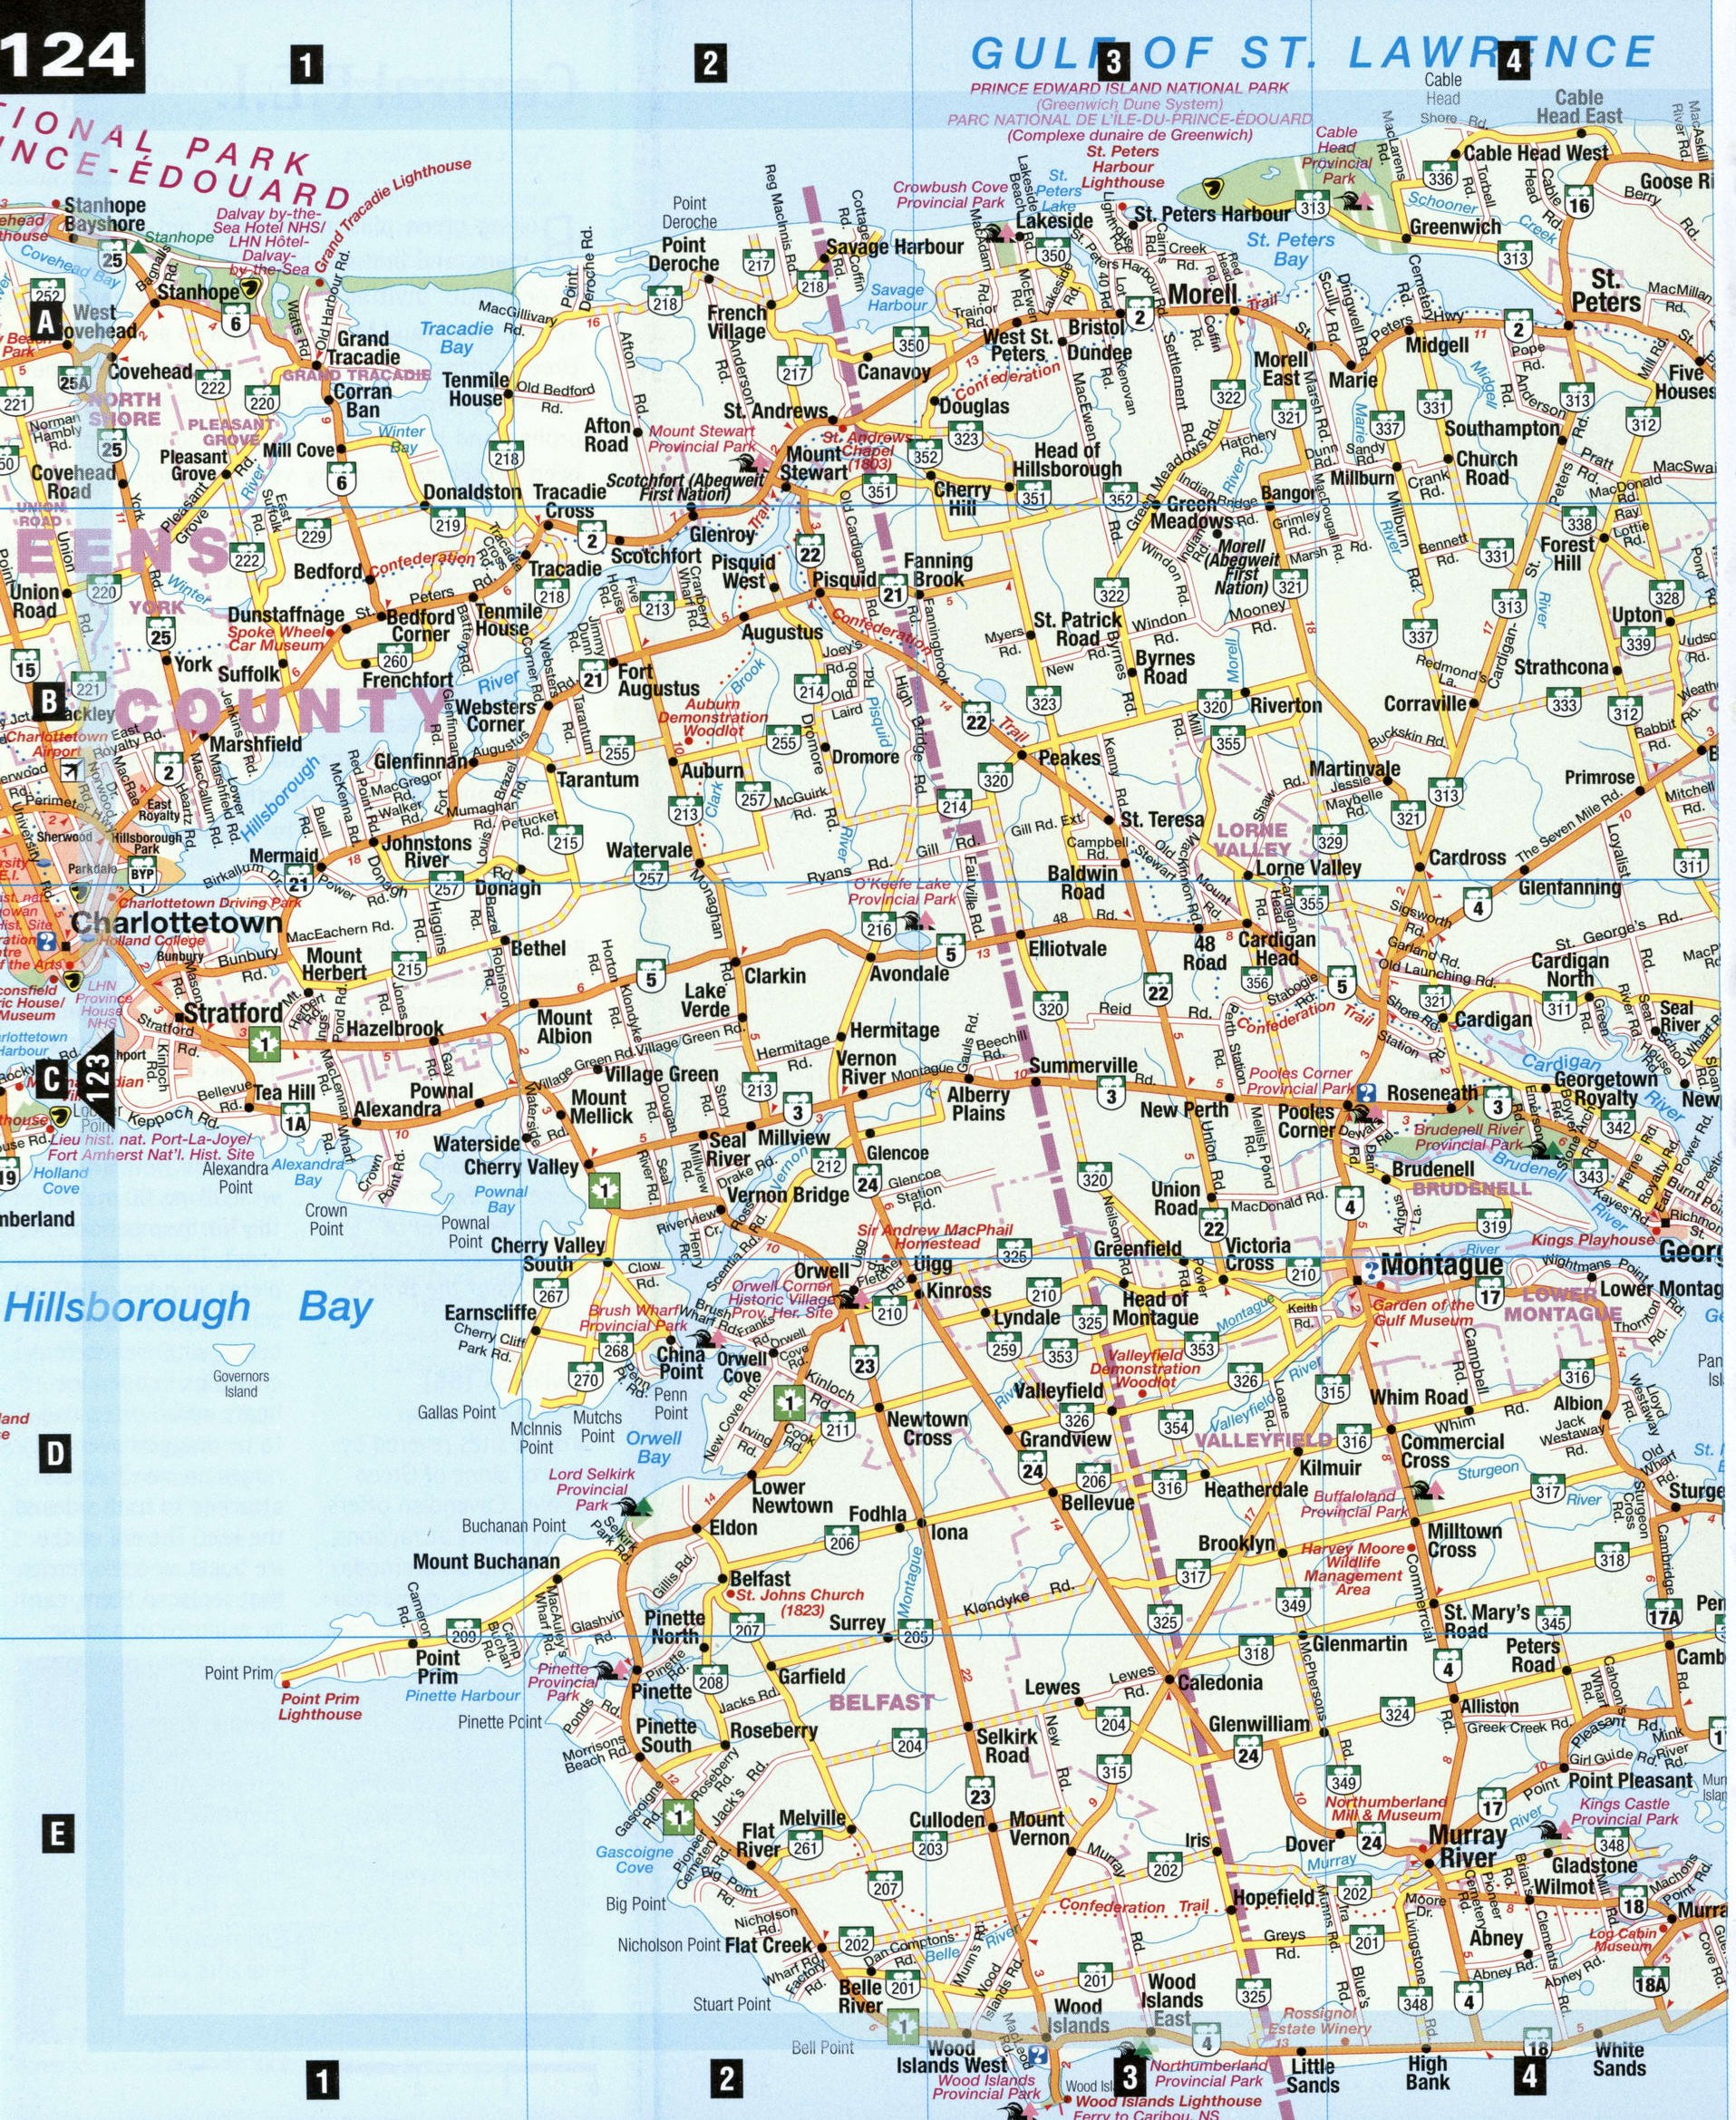 Map of Kings county Newfoundland Canada